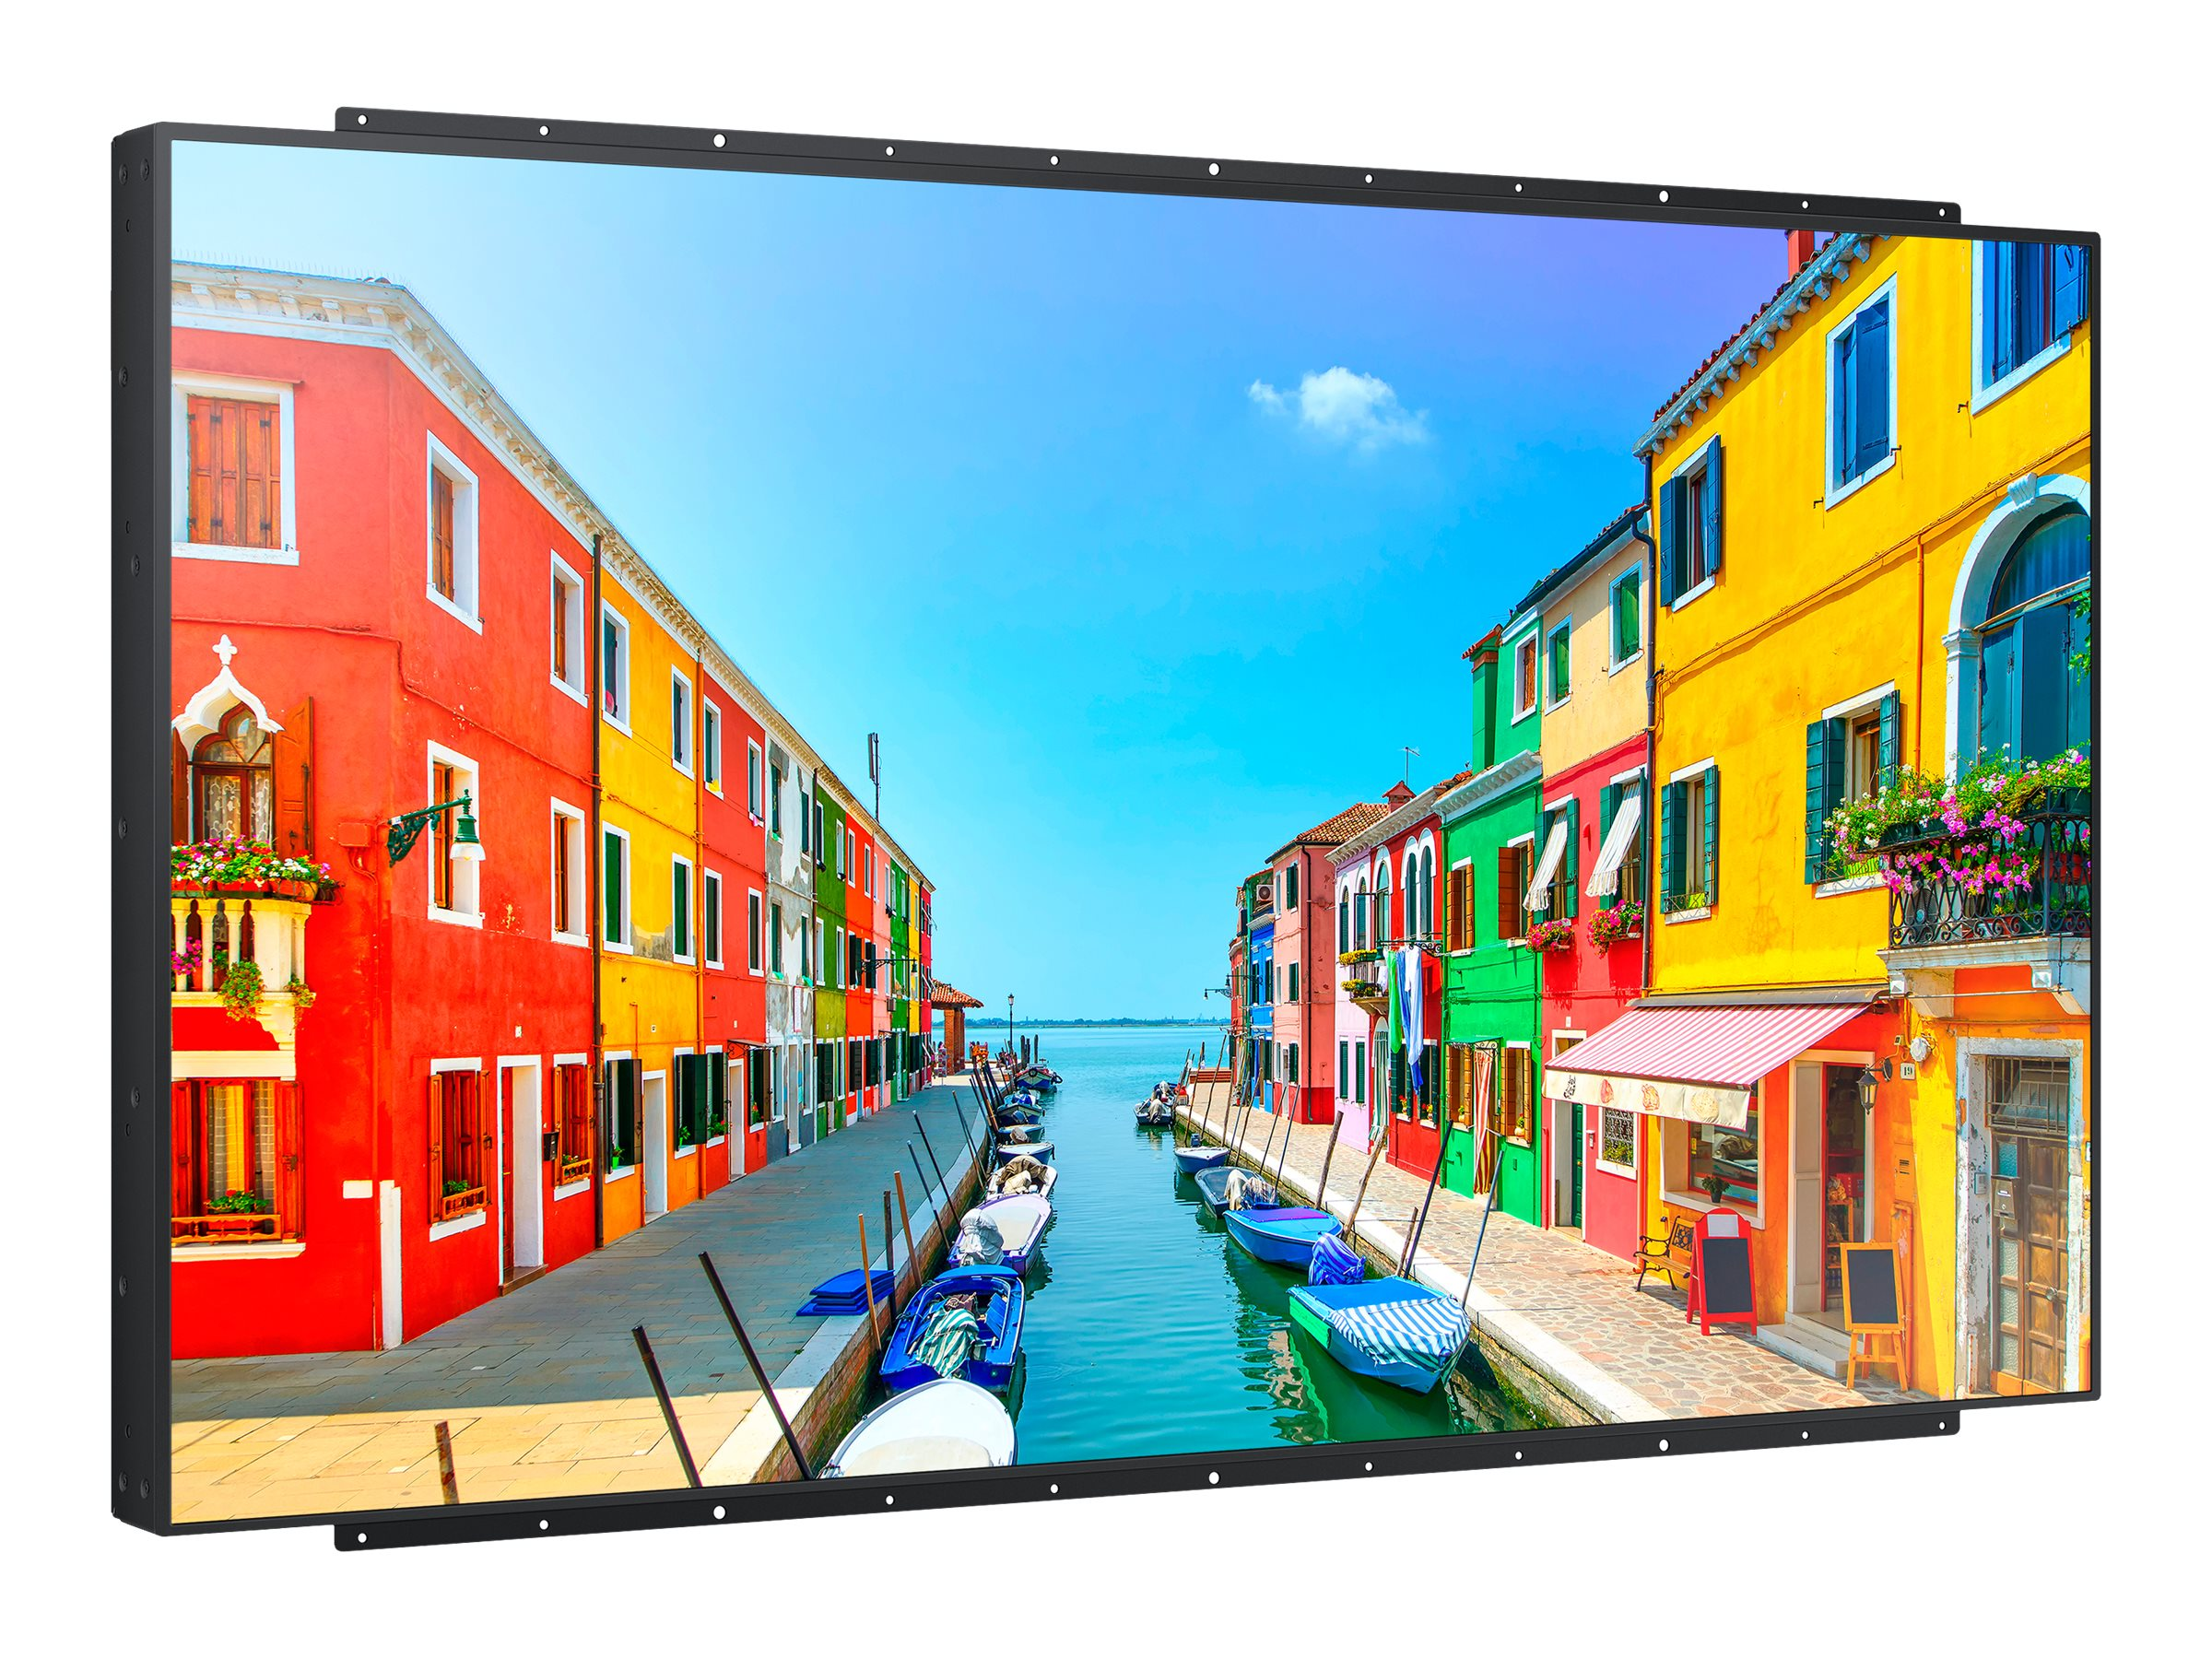 Samsung 55 OMD-K Series Full HD LED-LCD Outdoor Display, Black, OM55D-K, 18124837, Monitors - Large-Format LED-LCD